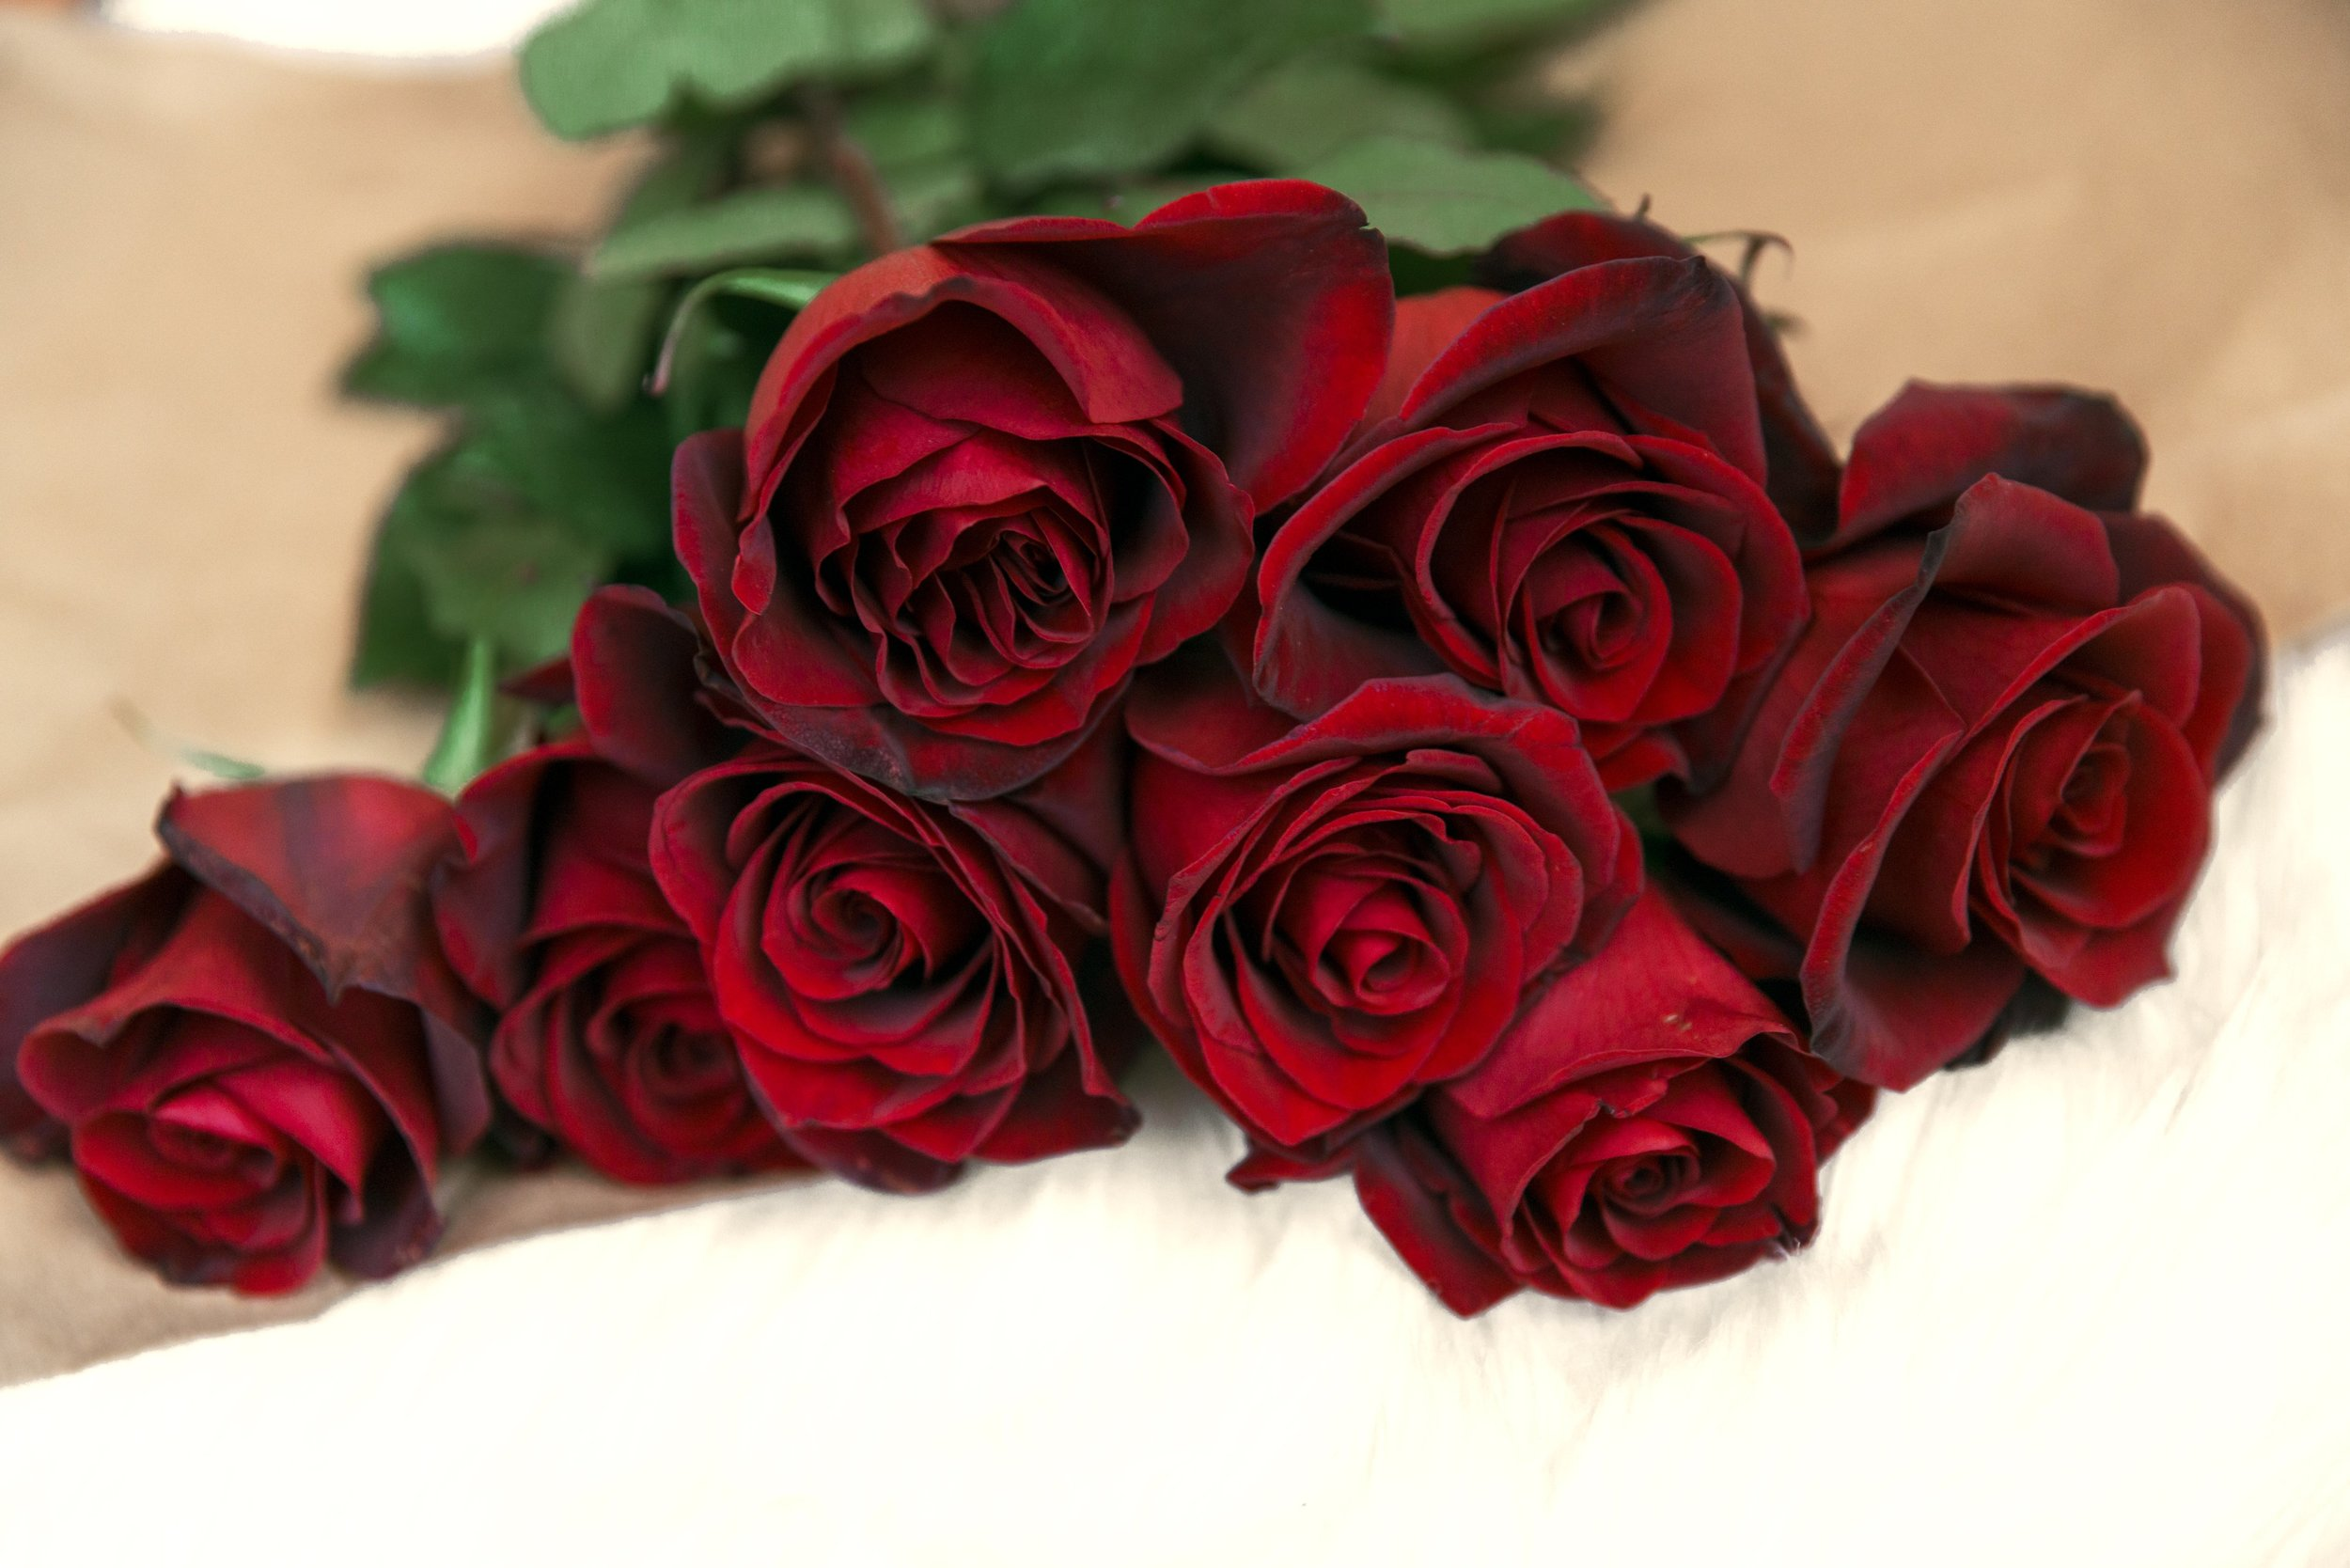 red-rose-bouquet-on-table_4460x4460.jpg